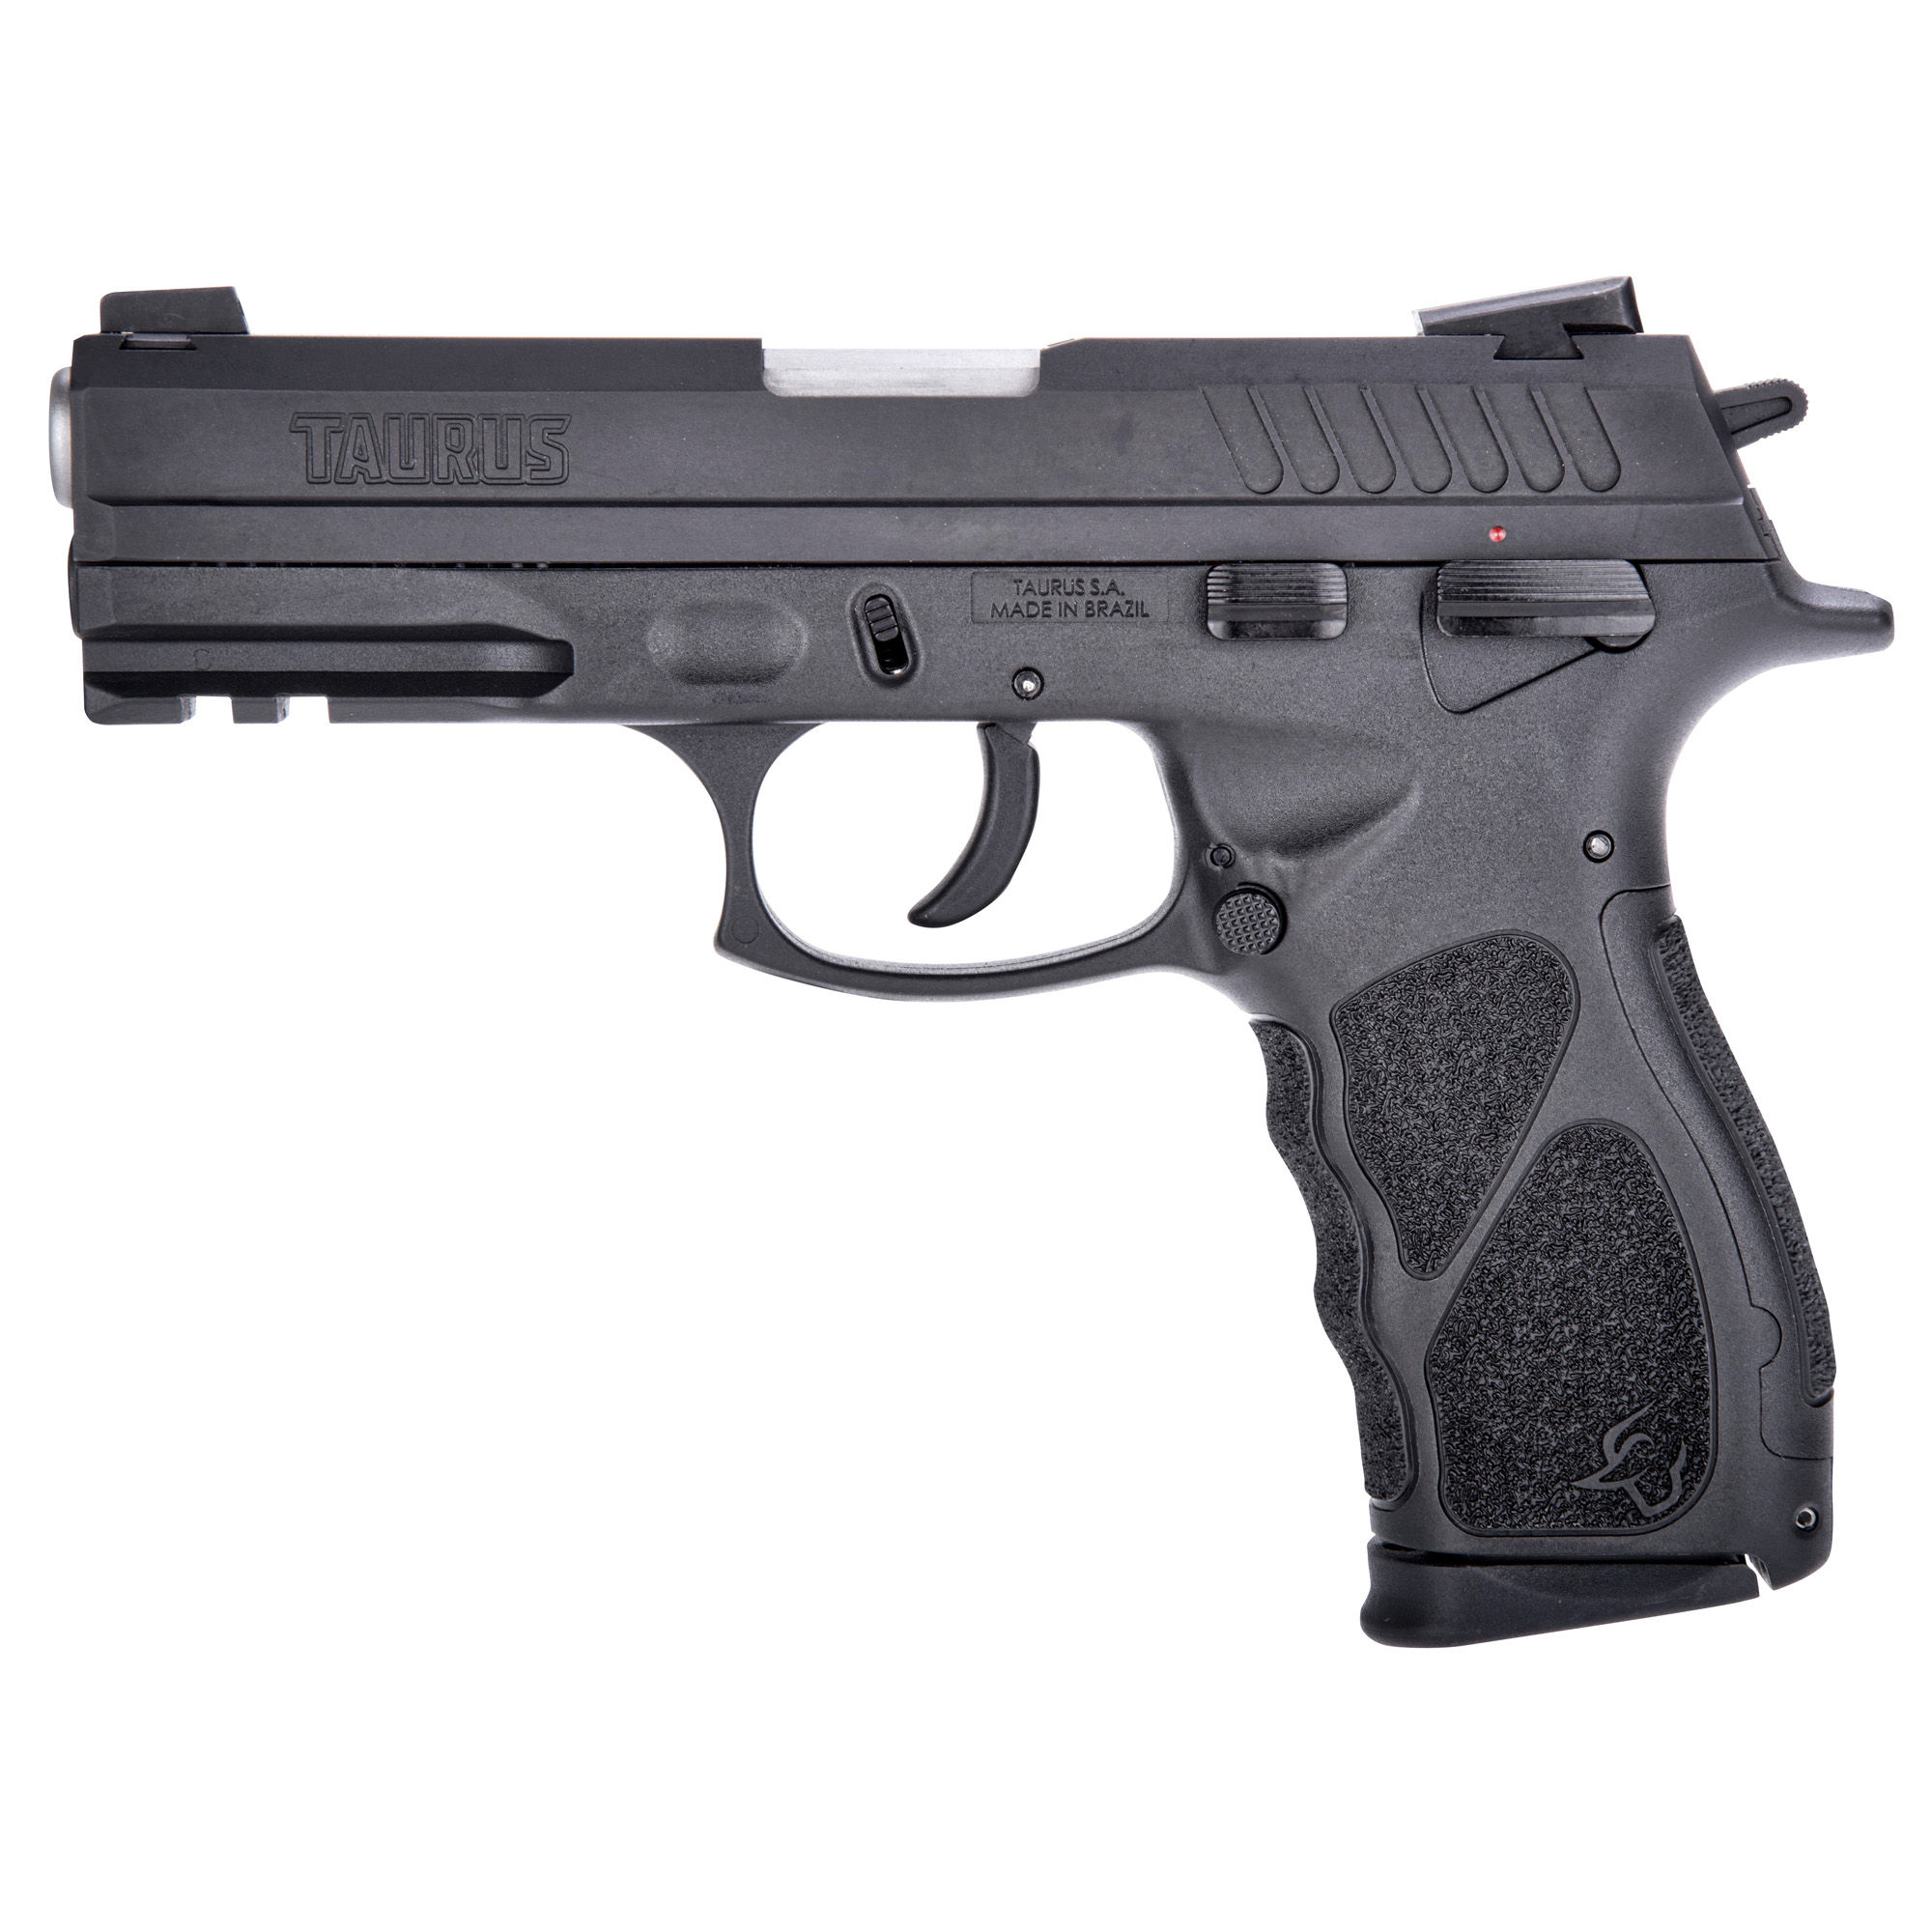 Presenting the all-new Taurus TH series external hammer-fired pistol. the TH40 is a modern reinvention of the classic hammer-fired SA/DA semi-auto platform. Available in both full frame and compact models.